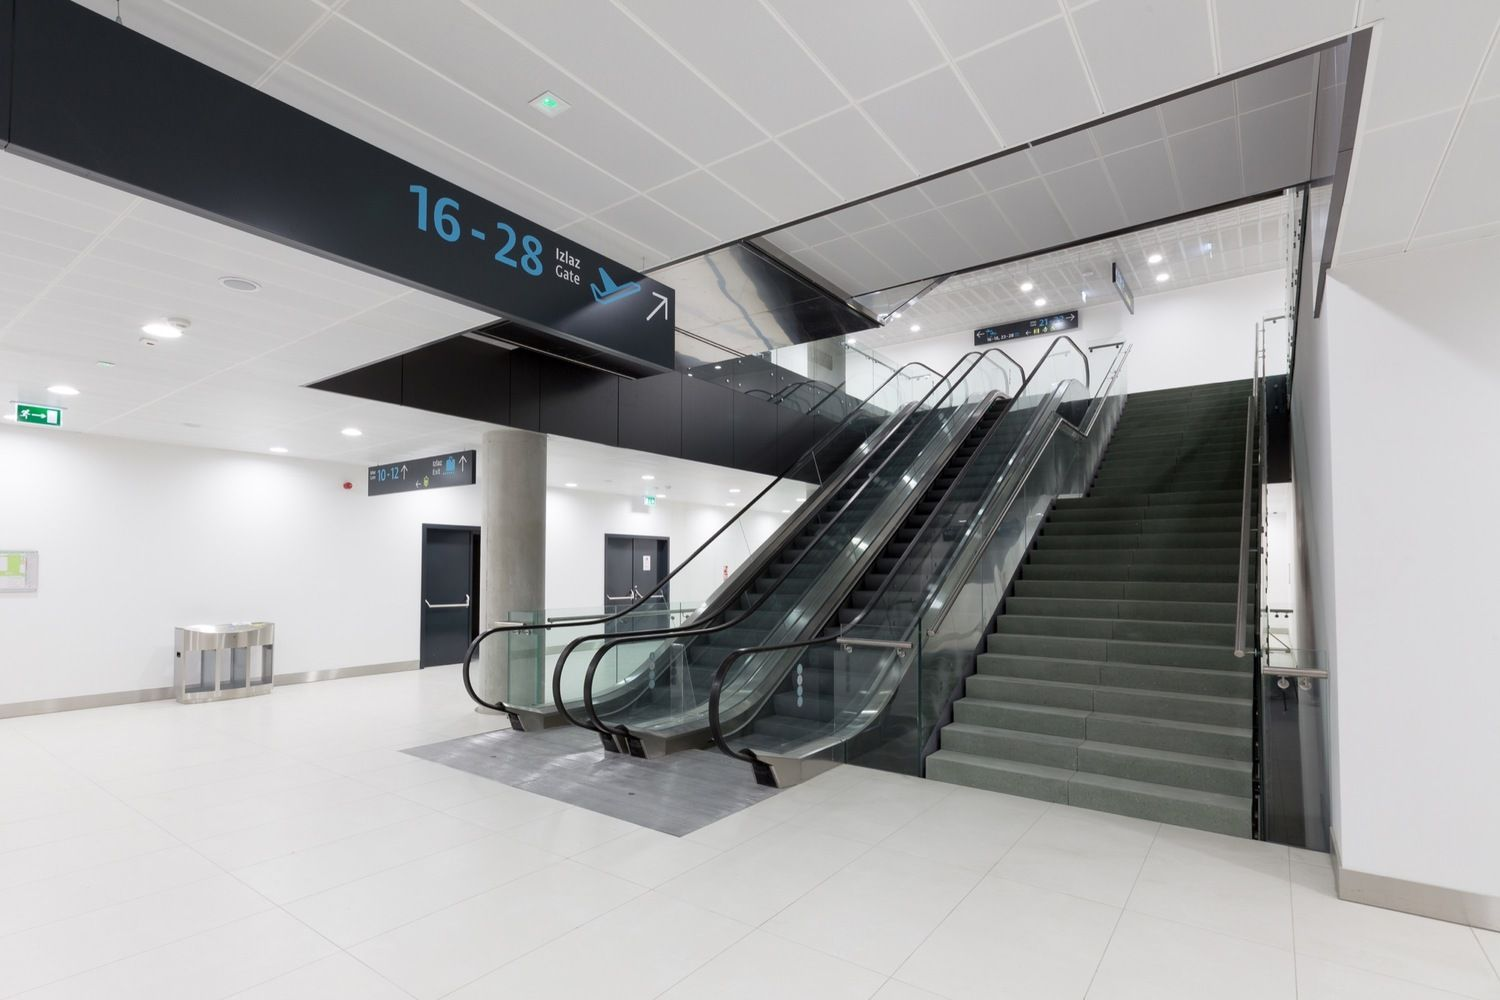 Gallery Of Zagreb Airport Kincl Neidhardt Institut Igh 12 Architecture Project Zagreb Fire Doors